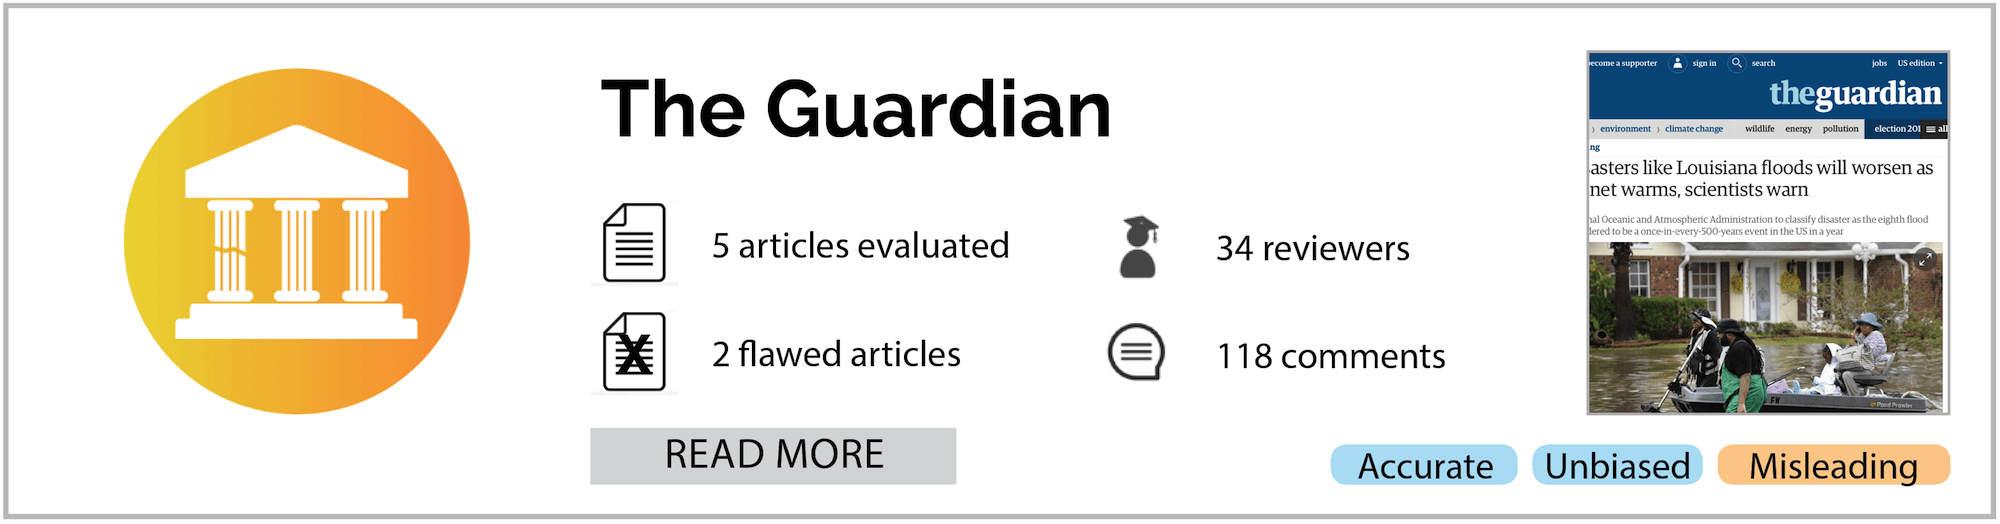 the_guardian_101316